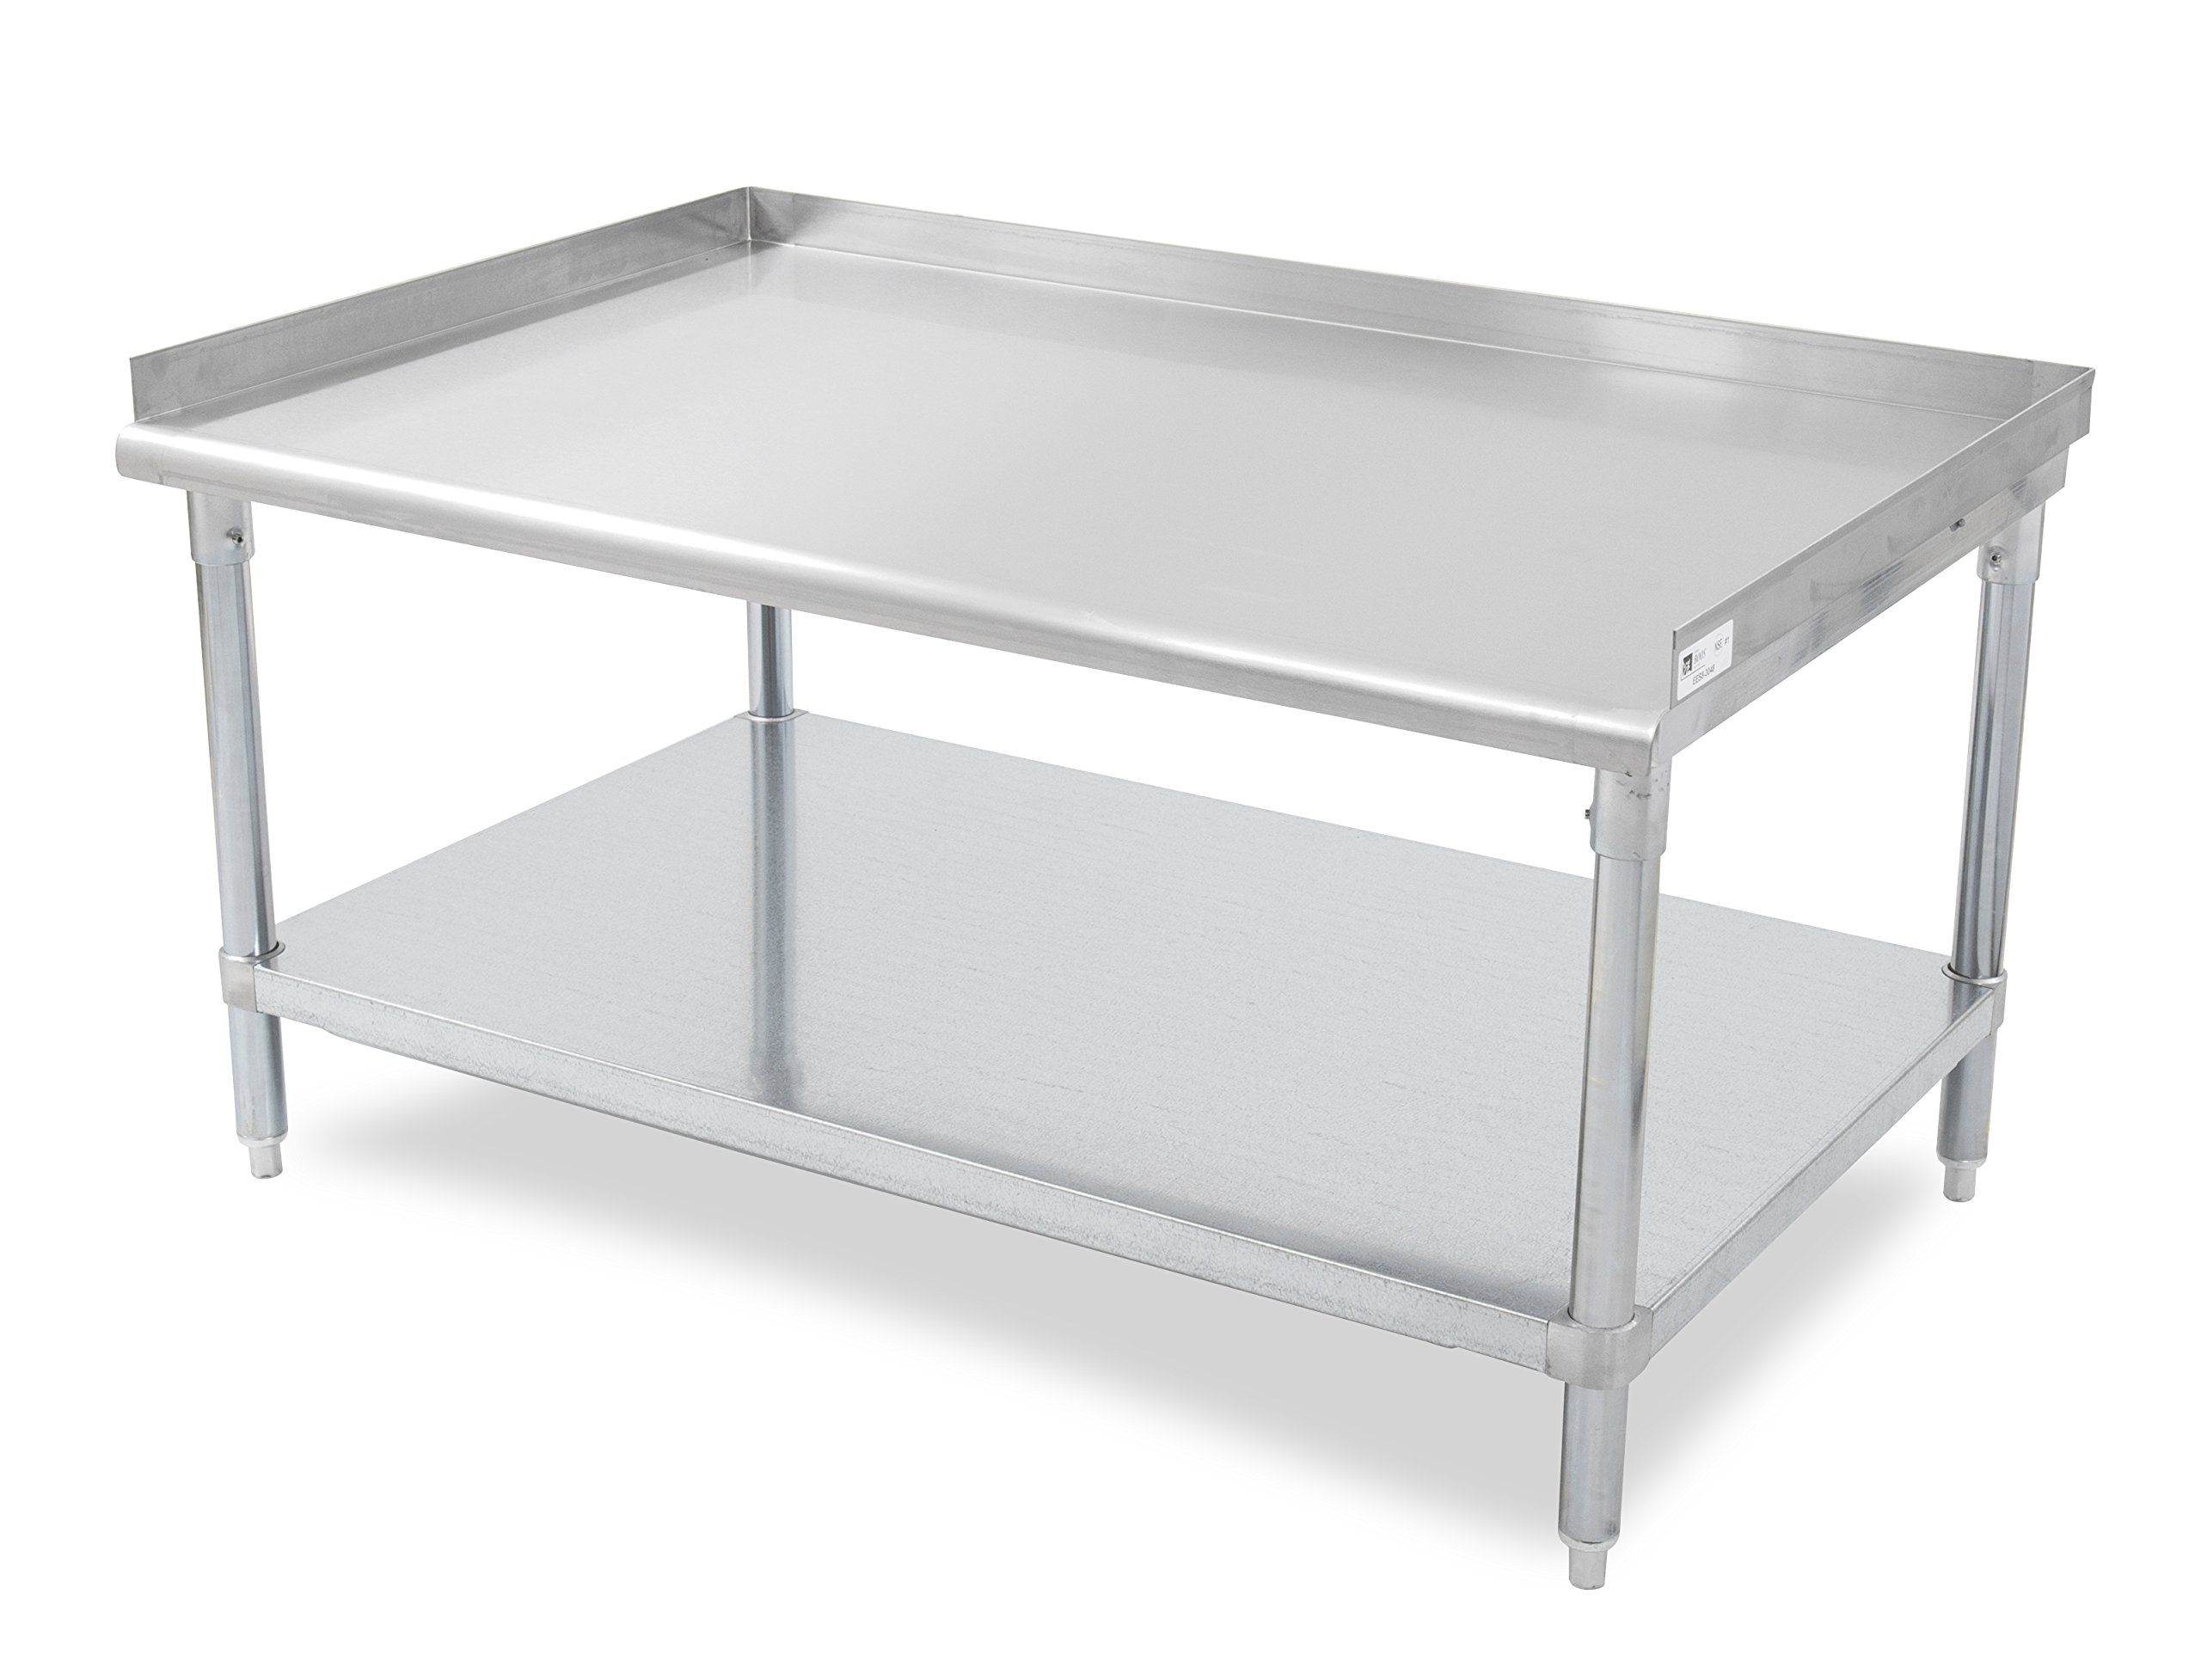 John Boos E Series Stainless Steel 430 Equipment Stand with 1.5 inch Rear and Side Risers, Adjustable Galvanized Undershelf, 15'' Length x 30'' Width